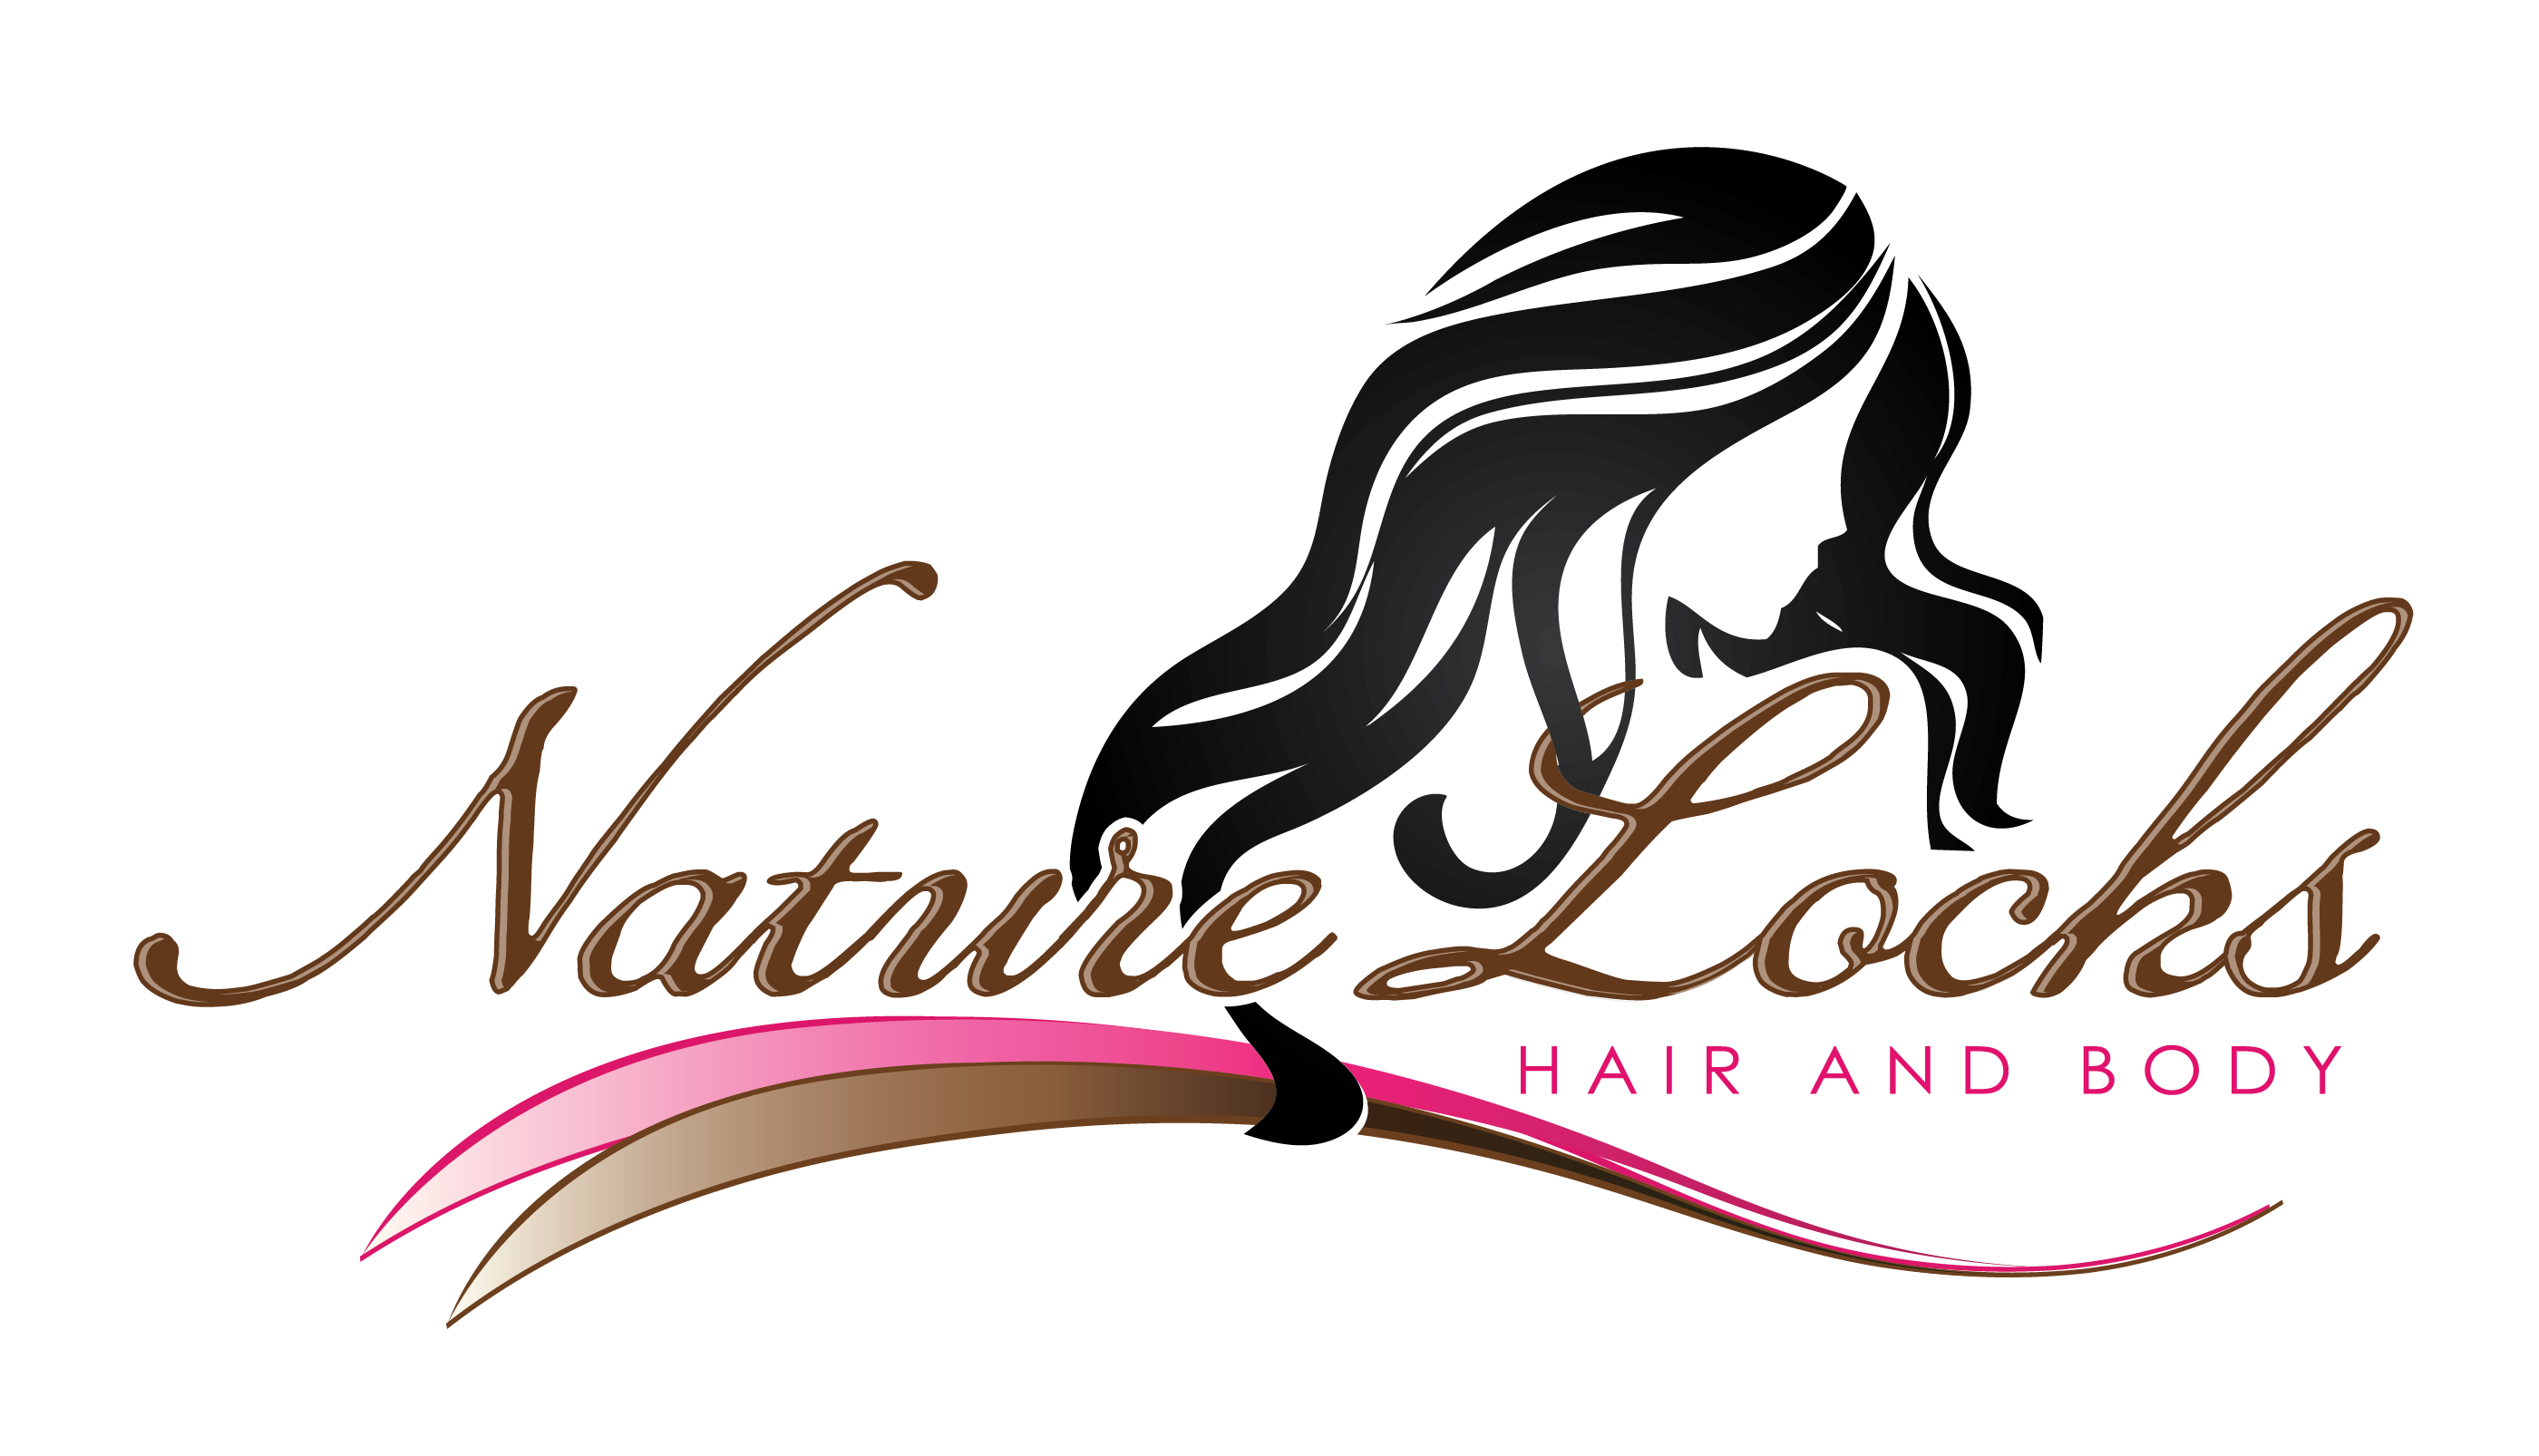 Cosmetology clipart hair weave. Elegant extensions logo and